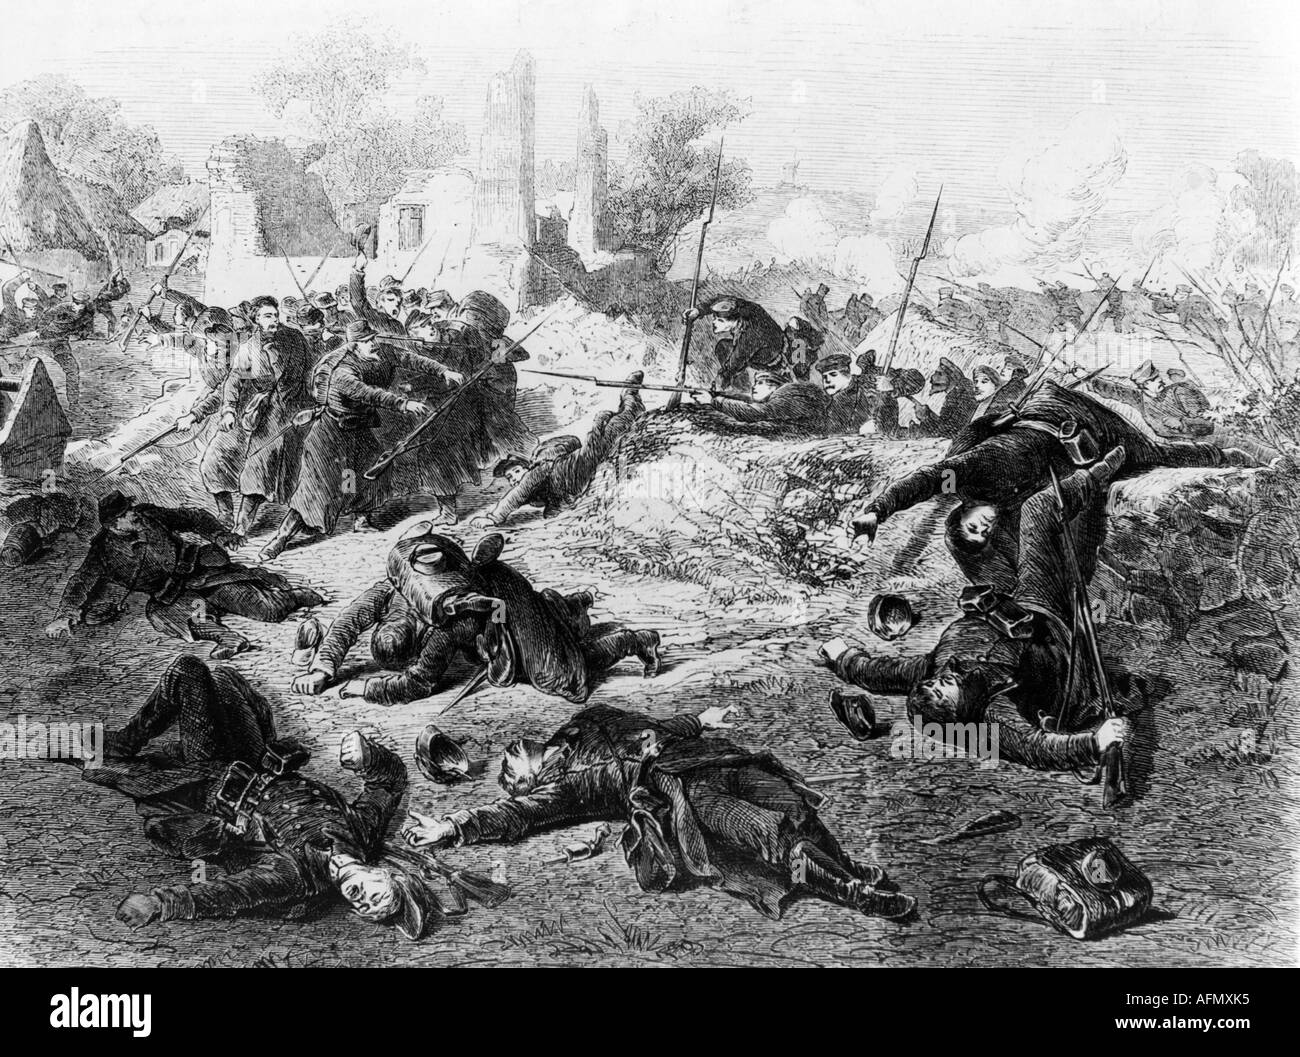 events, Second Schleswig War 1864, Battle of Als, 29.6.1864, wood engraving, drawing by August Beck (1823 - 1872), Danish Prussian War, Germany, Denmark, Prussia, soldiers, dead, warfare, Wars of German Unification, soldiers, fighting, fight, historic, historical, skirmish at Kjär, Kjar, Kjaer, 19th century, people, Additional-Rights-Clearances-NA - Stock Image